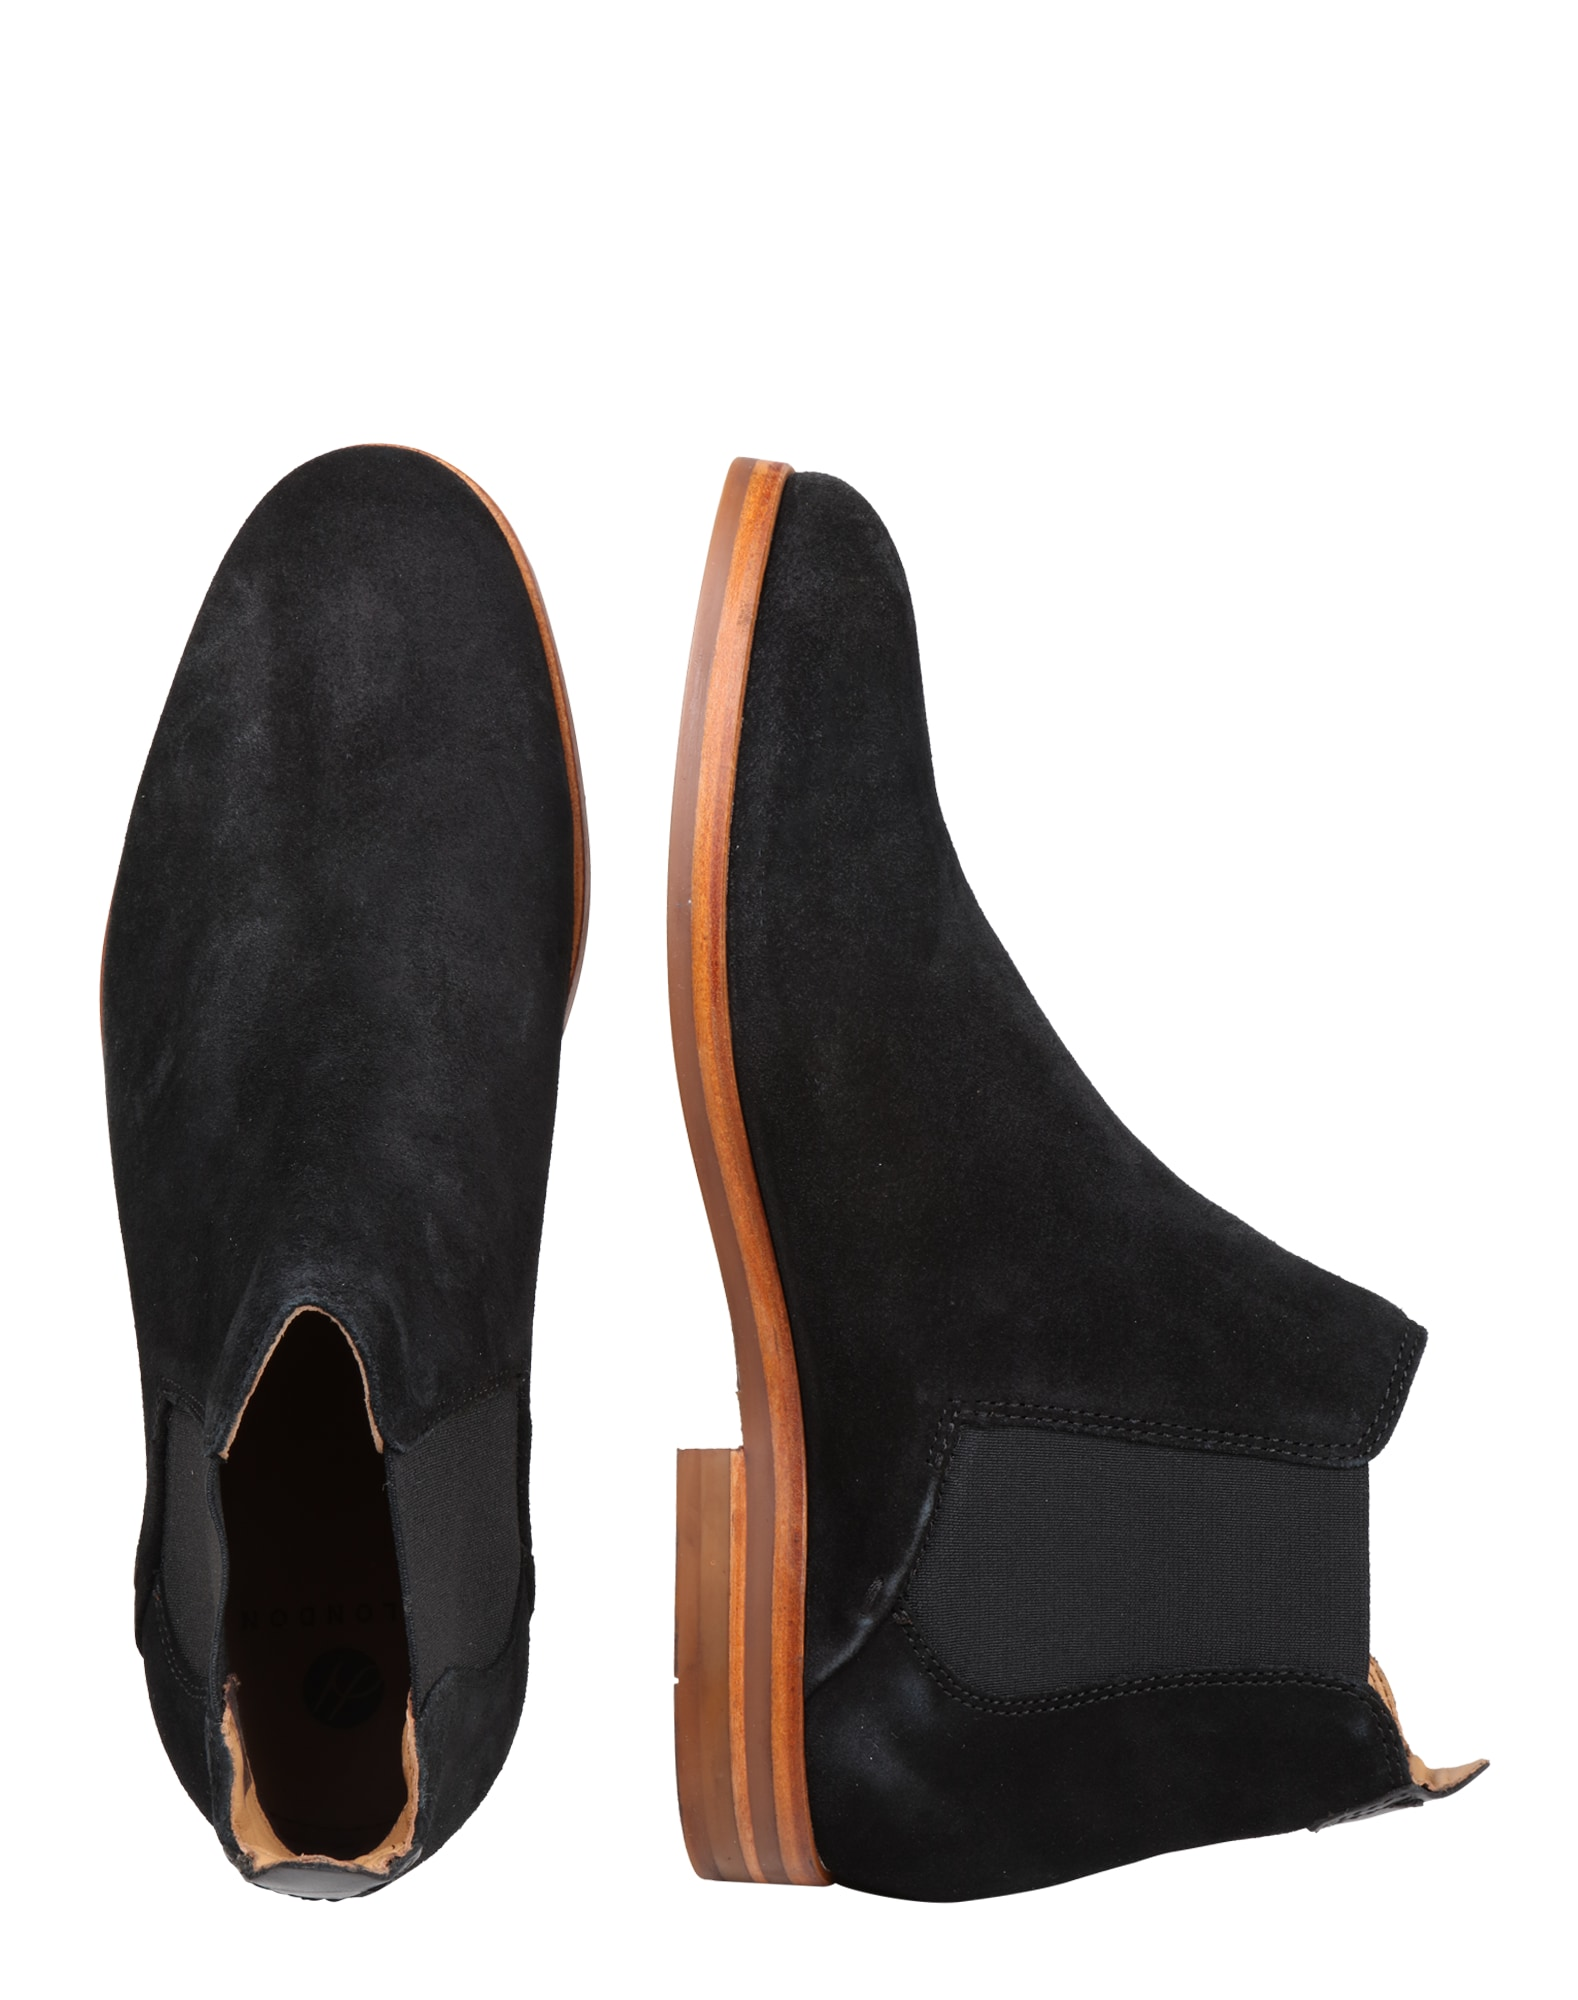 Chelsea boots 'Tonti Suede'